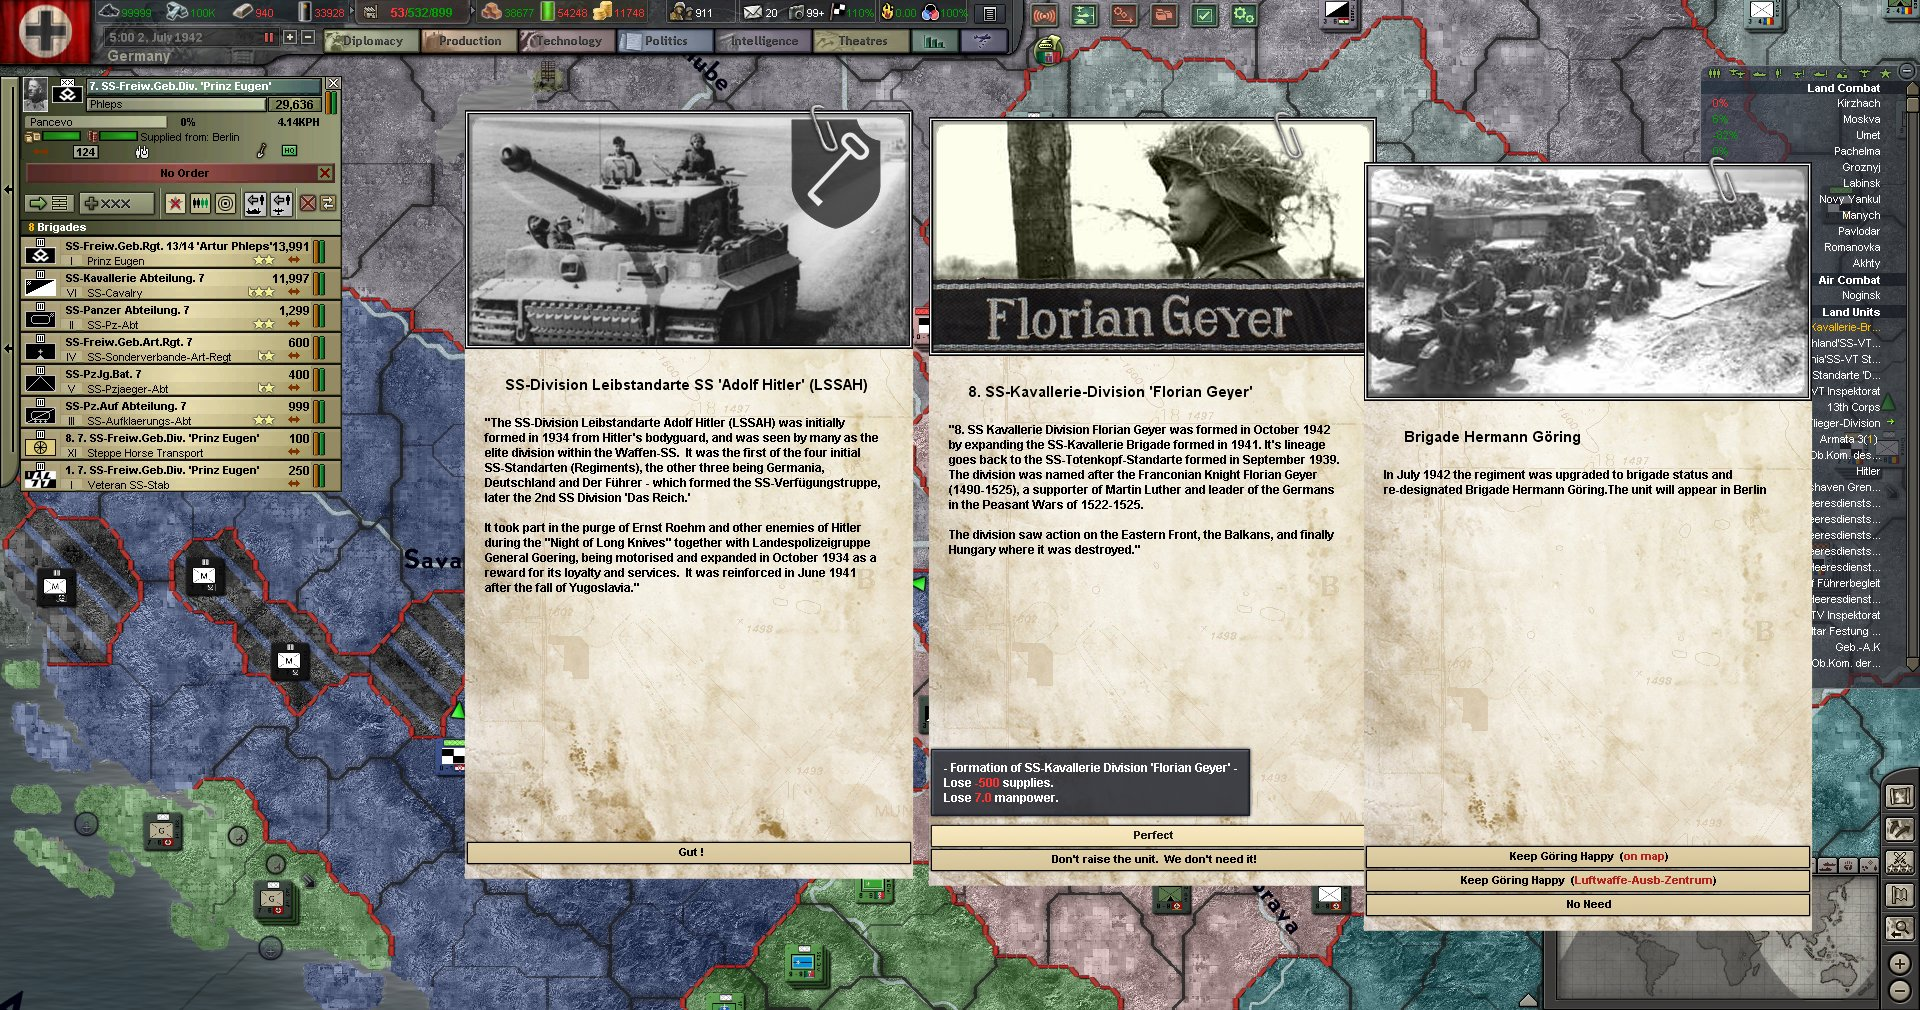 The Thousand Year Reich : Chapter 9, Operation Edelweis